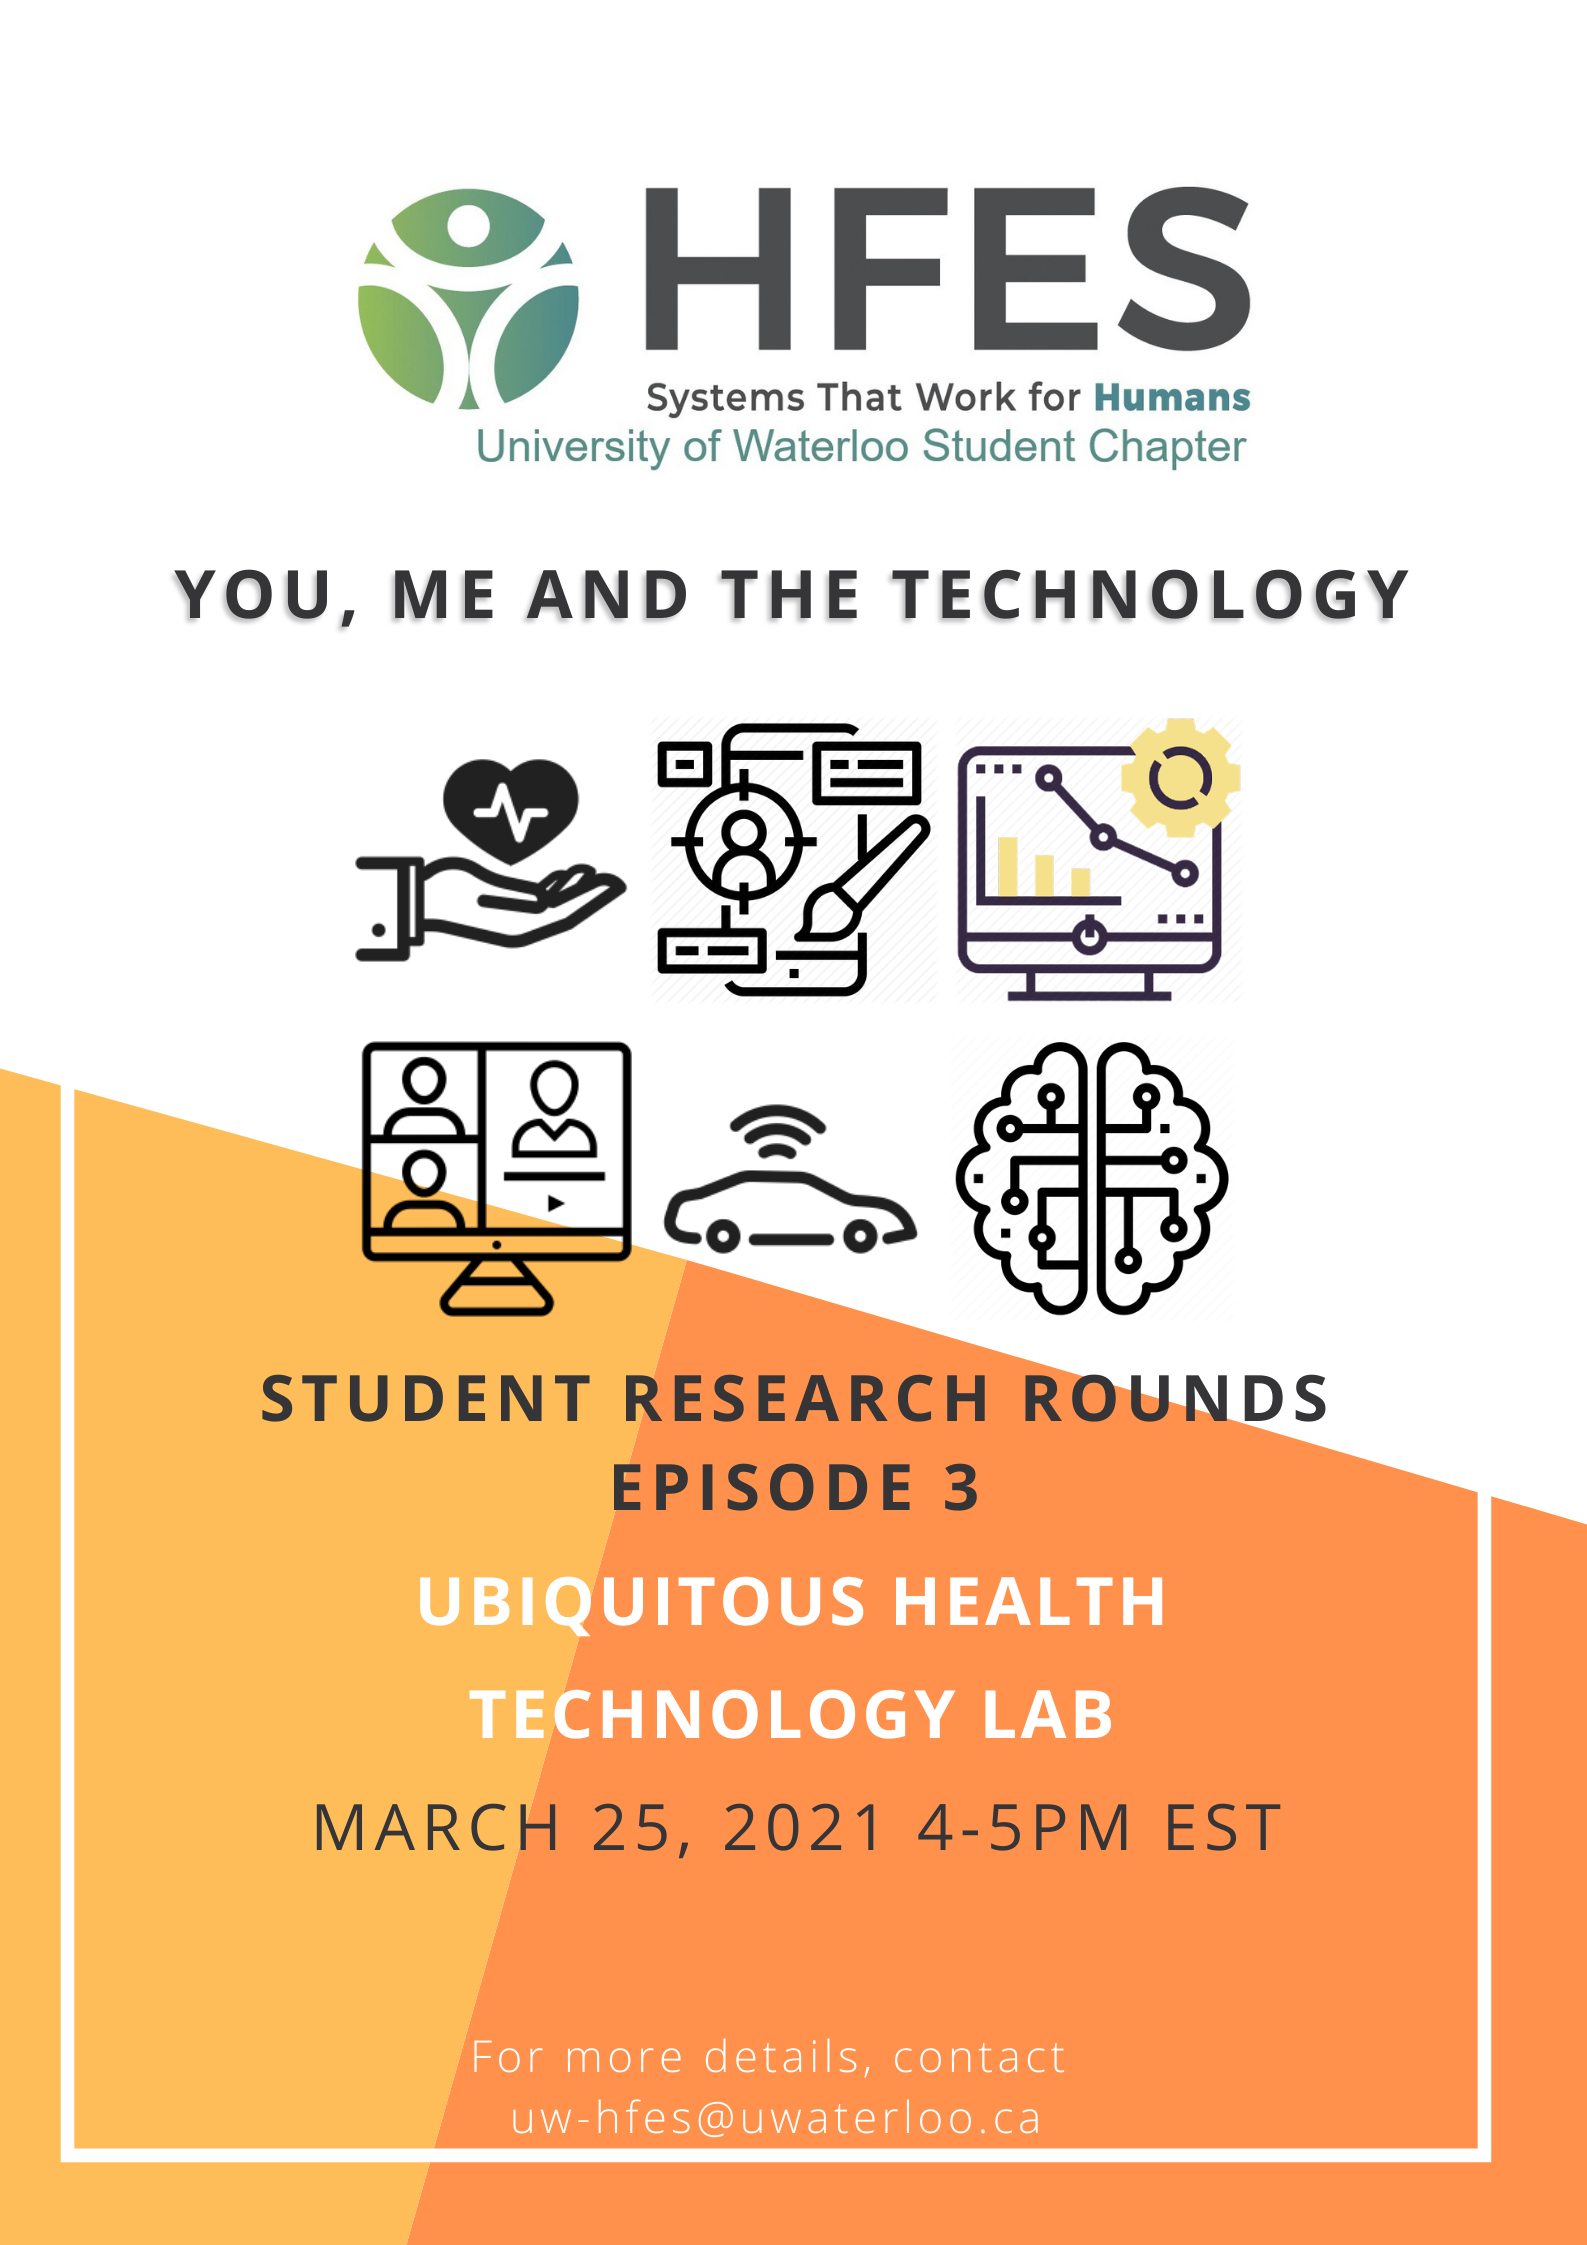 Student Research Rounds, Episode 3 featuring Ubiquitous Health Technology Lab